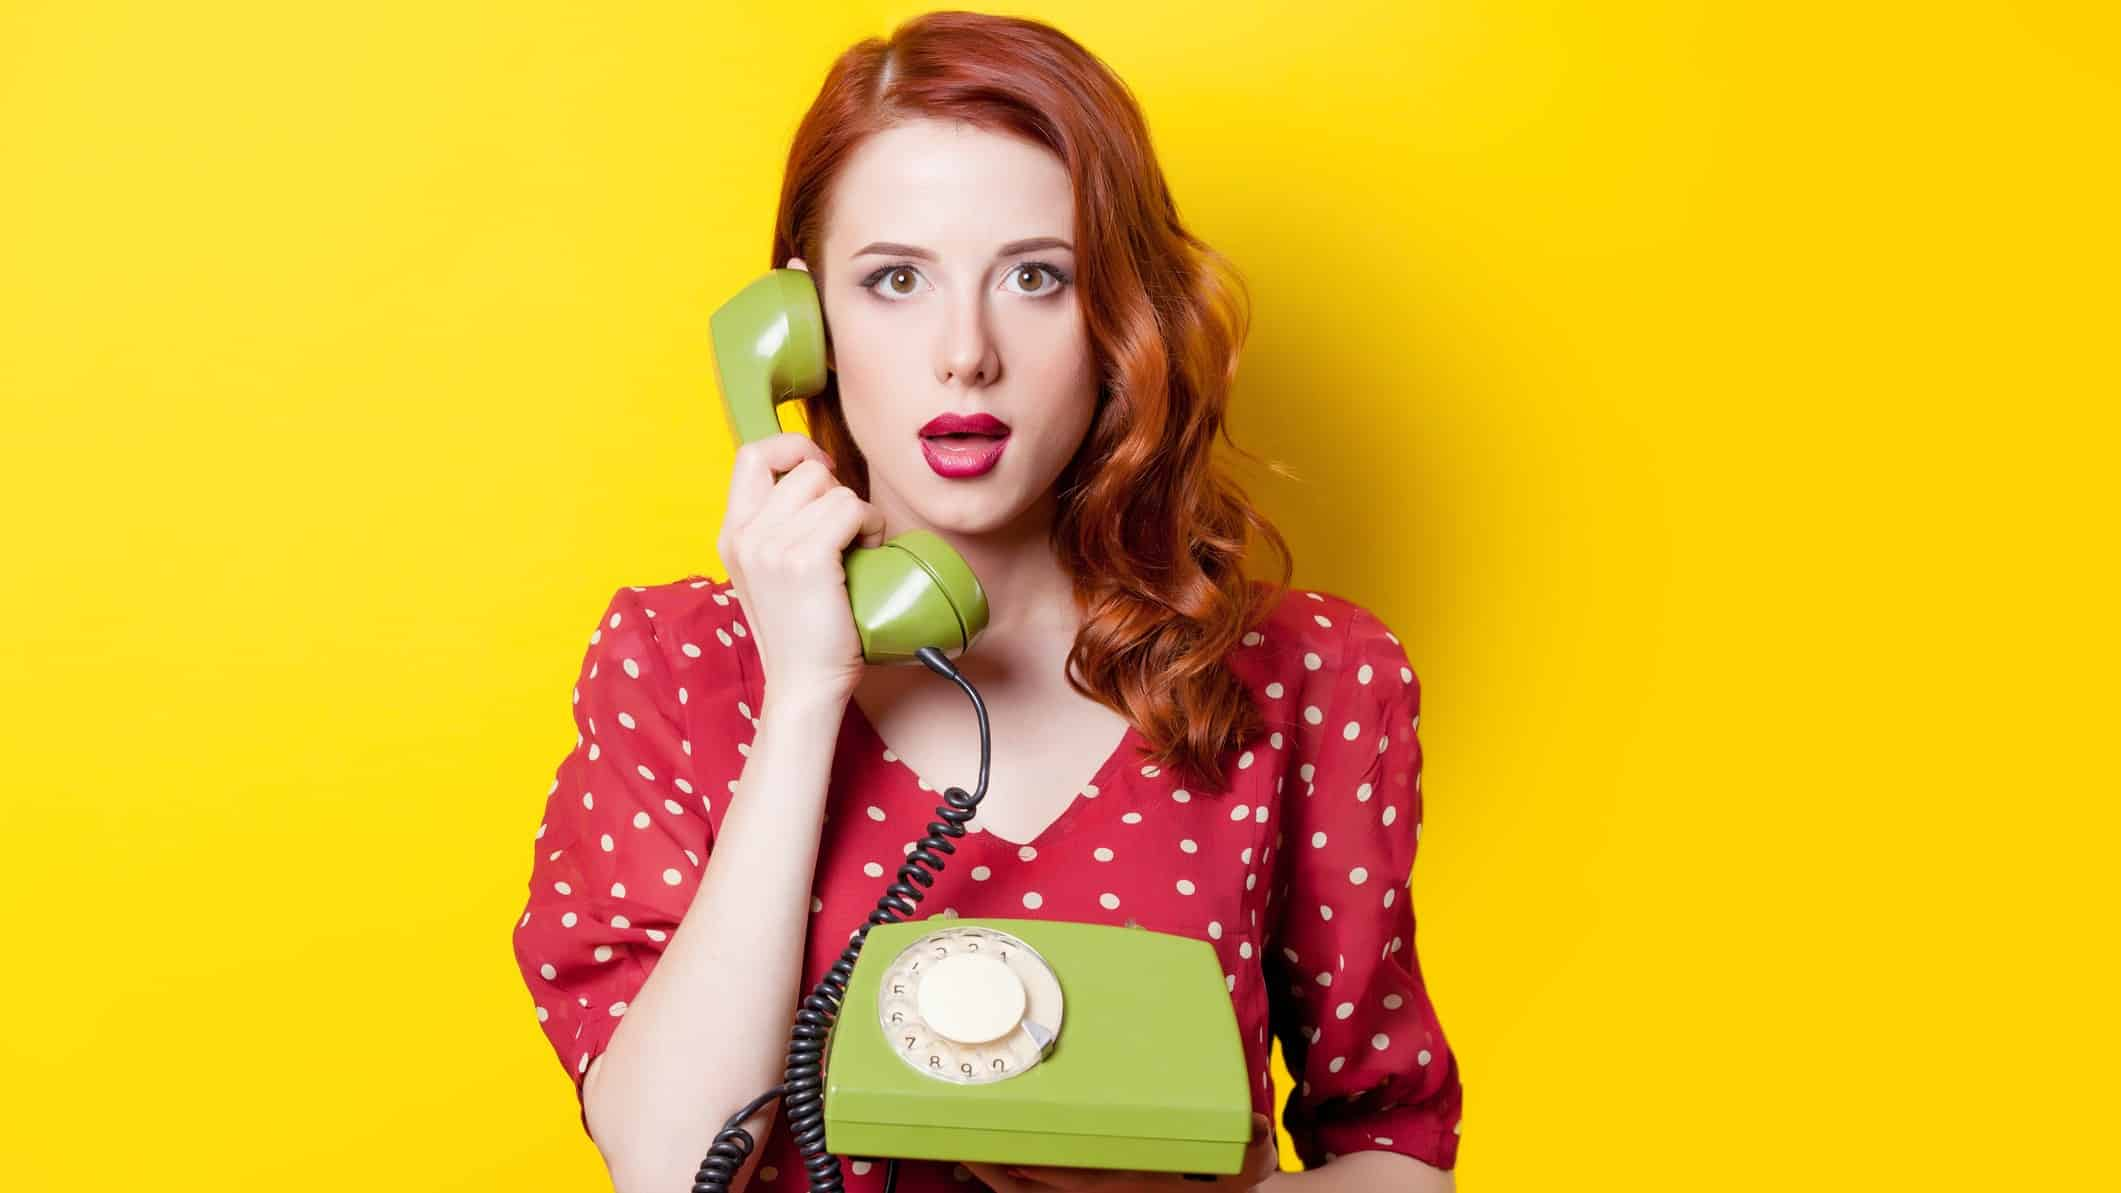 person on old-fashion telephone, surprised person